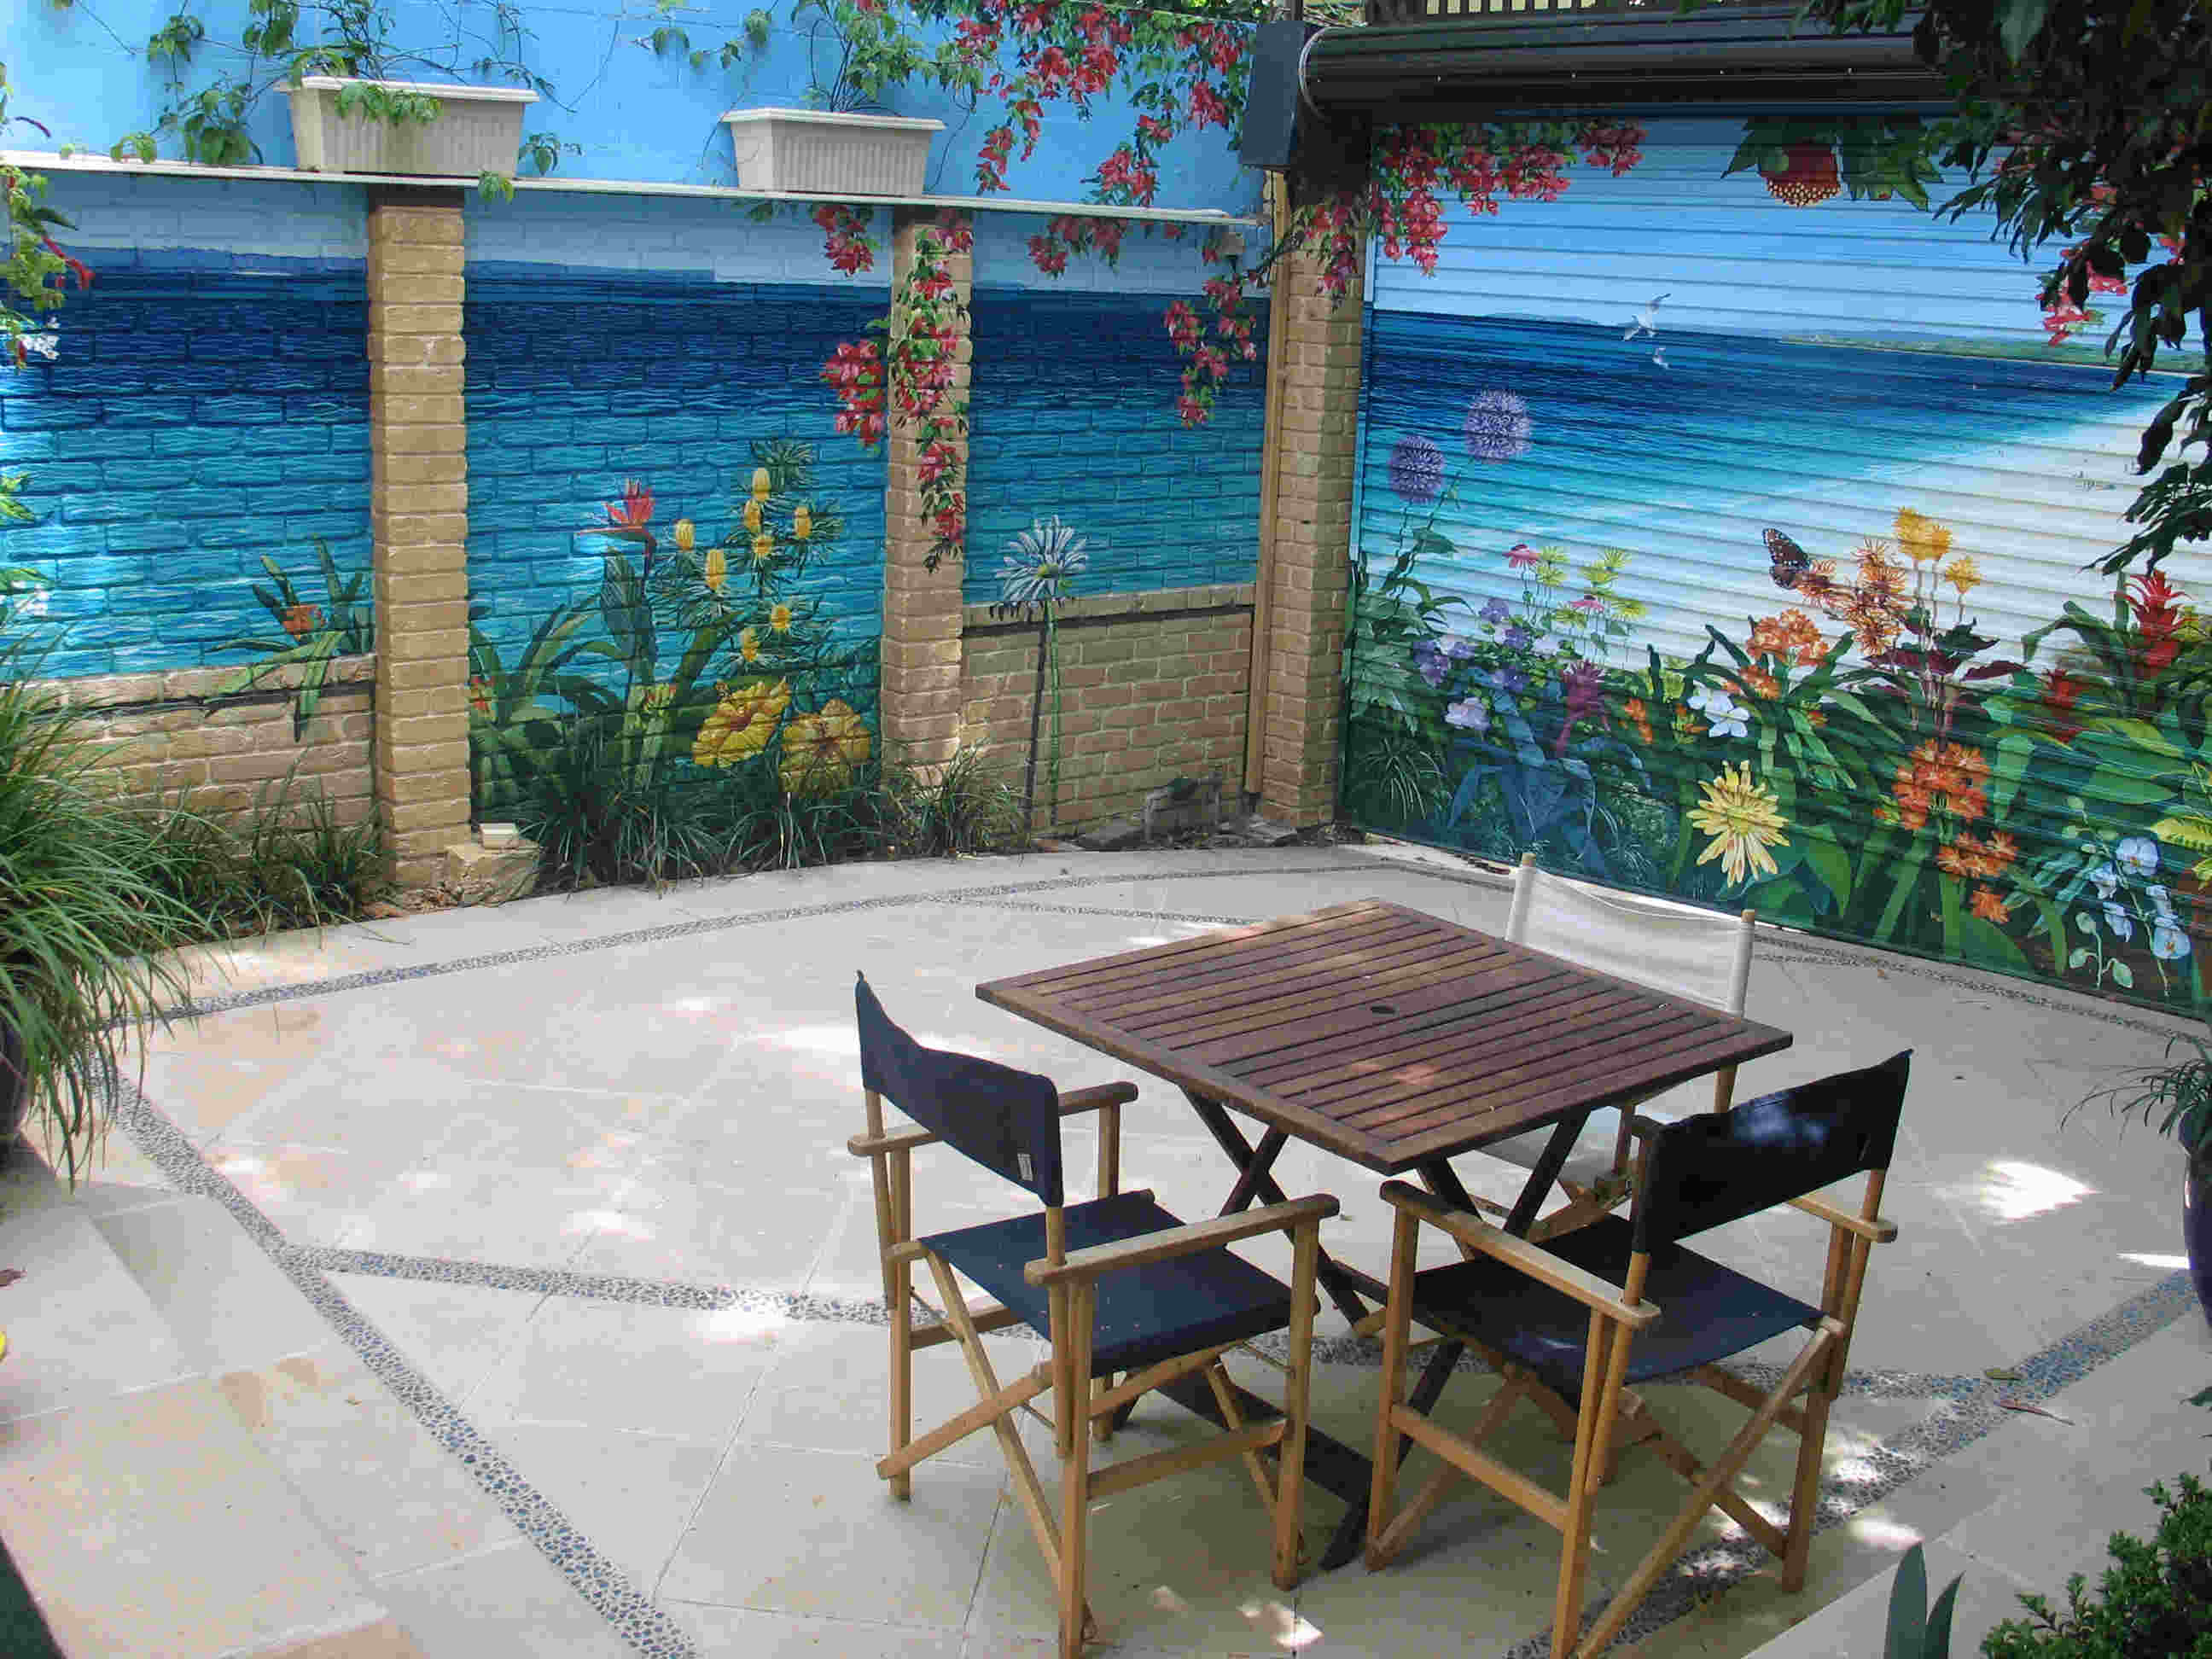 beach scene backyard in glebe muralart the backyard consisted of a brick wall and a garage door after preparing and undercoating the surfaces with etch primer and stain resistant prep coat